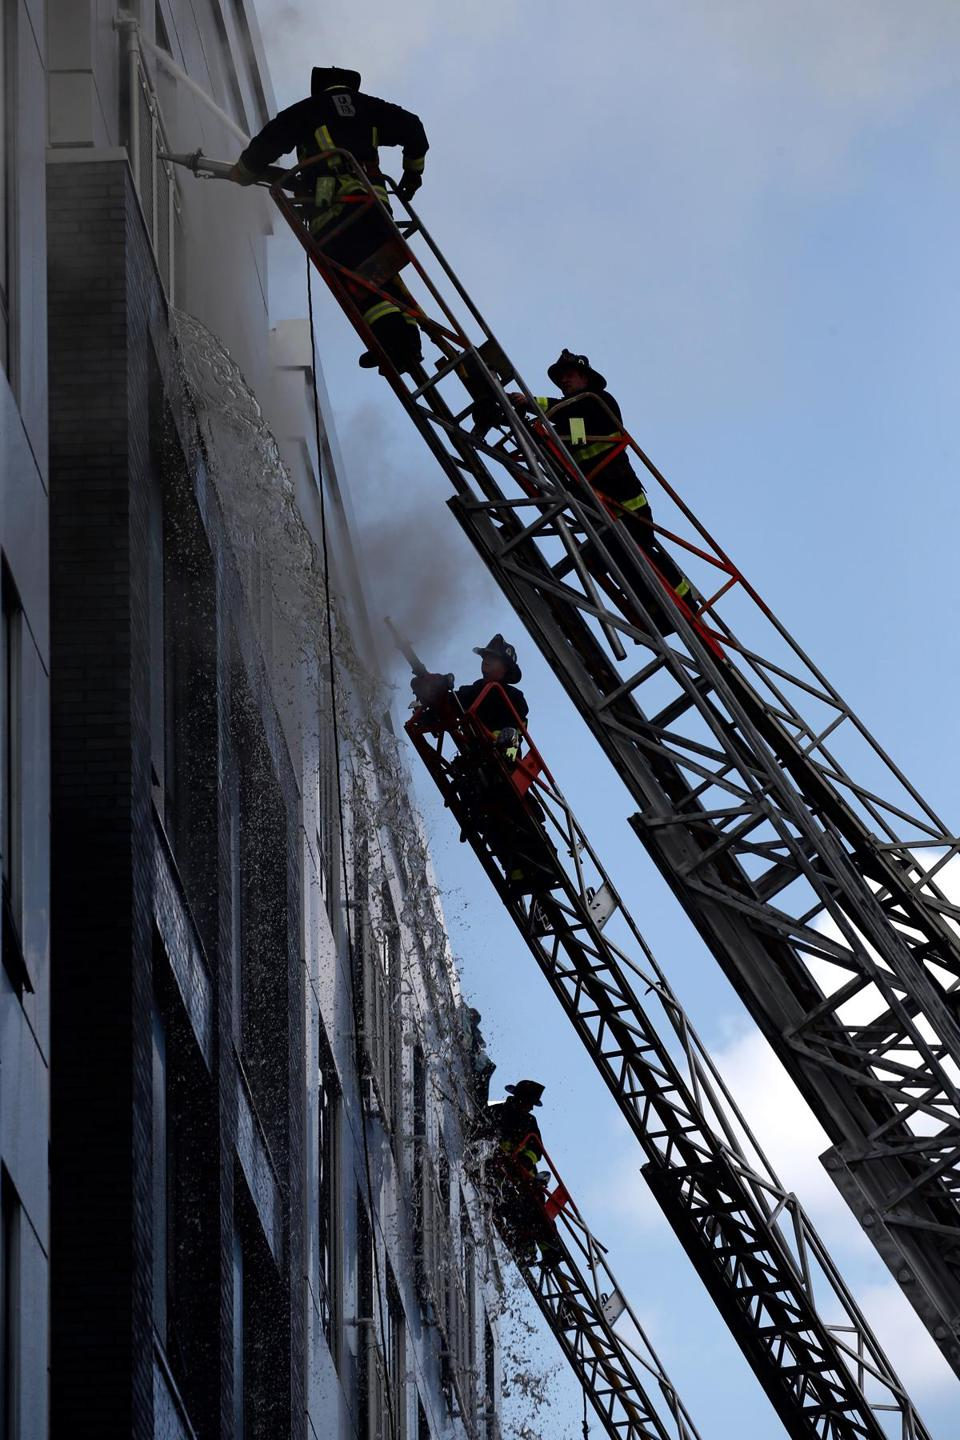 06-28-2017: Dorchster, MA: Firefighters at the scene of multiple alarm fire at 1977 Dorchester Ave. in the Dorchester neighborhood of Boston, Mass. June 28, 2017. Photo: David Ryan, Boston Globe staff